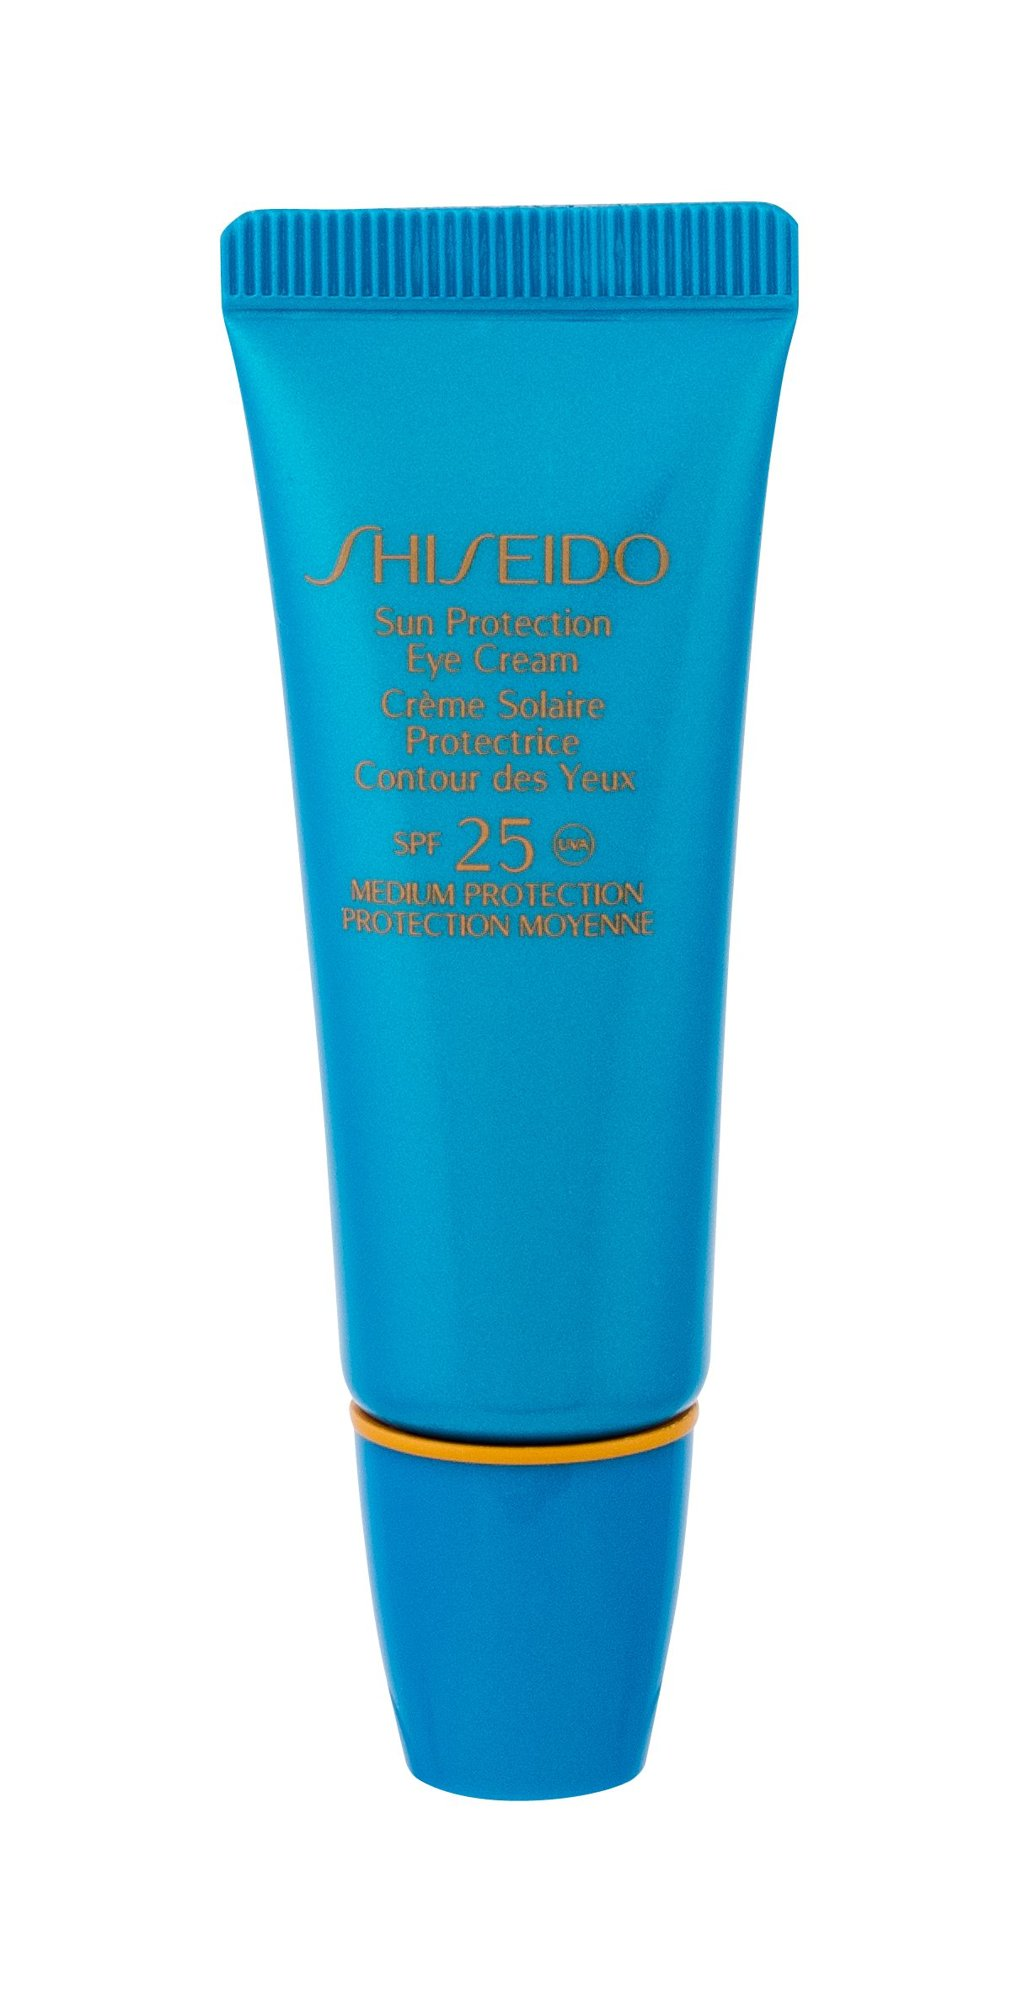 Shiseido Sun Protection Cosmetic 15ml